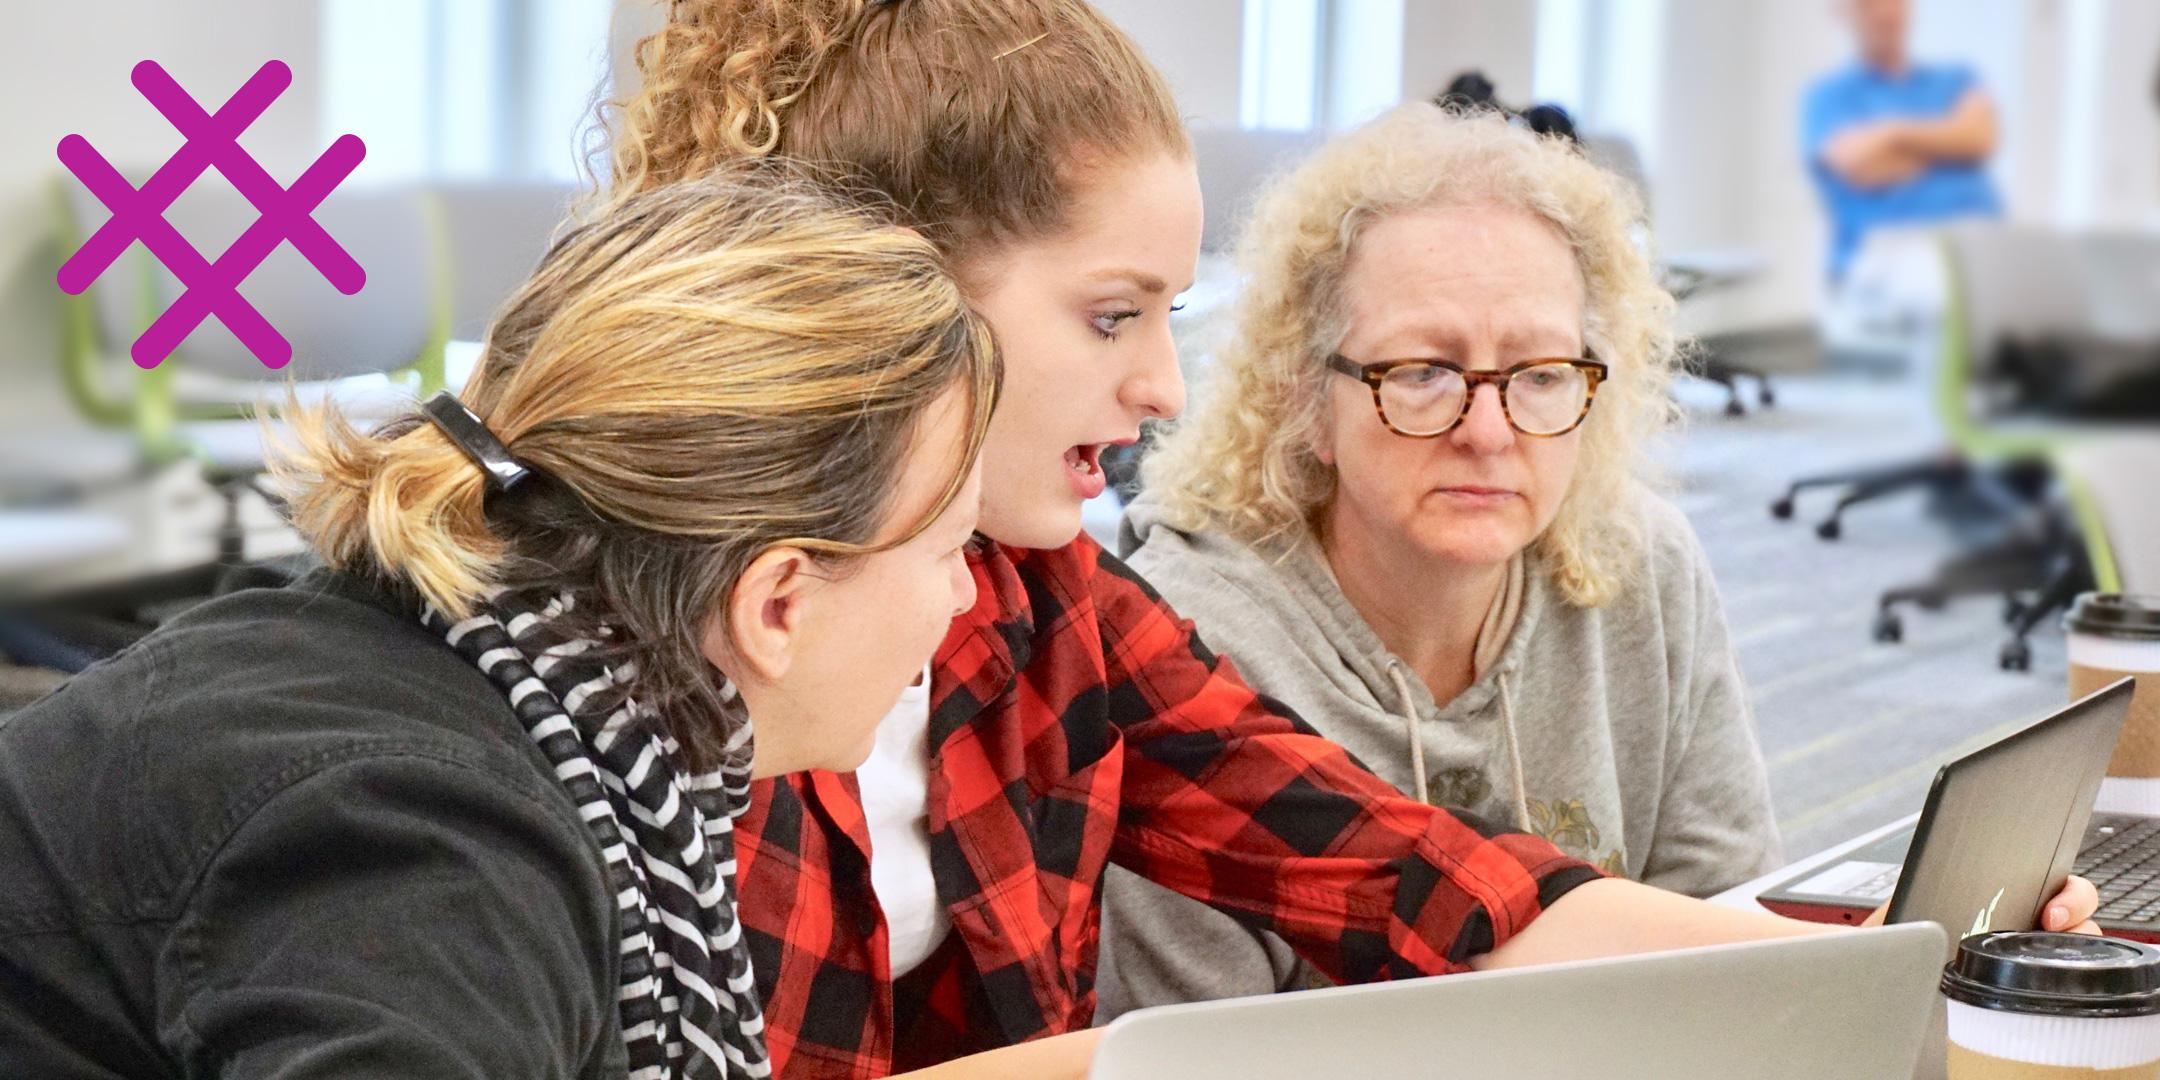 Ladies Learning Code: Using Data to Solve Pro